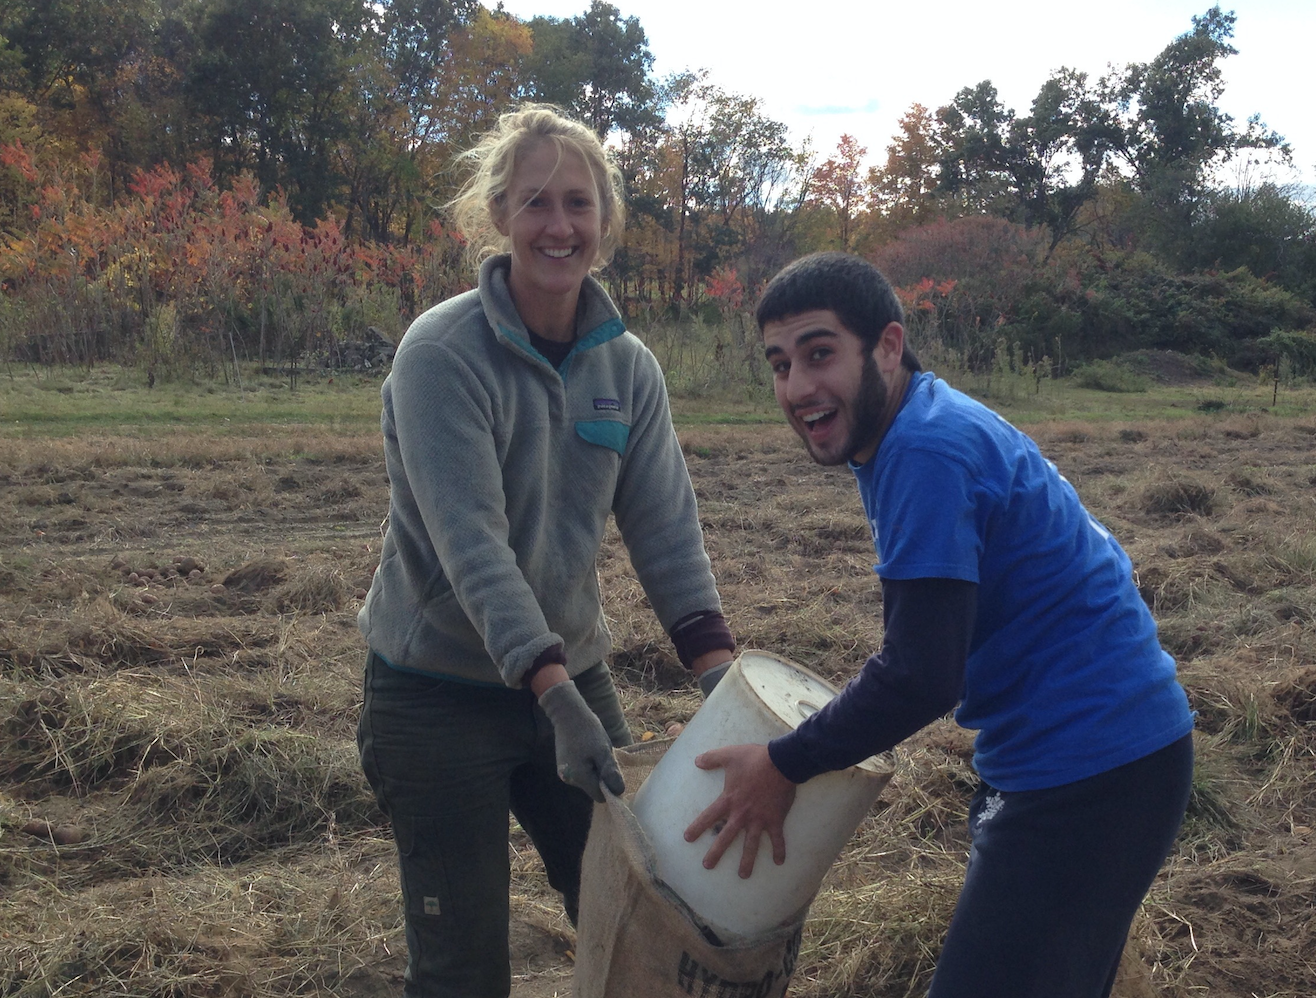 UMass requires all club players to perform community service. Captain Ben Sadok helps Ultiworld's Player of the Year Leila Tunnell pick potatoes at Brookfield Farm in Amherst. Bonding=buy-in.